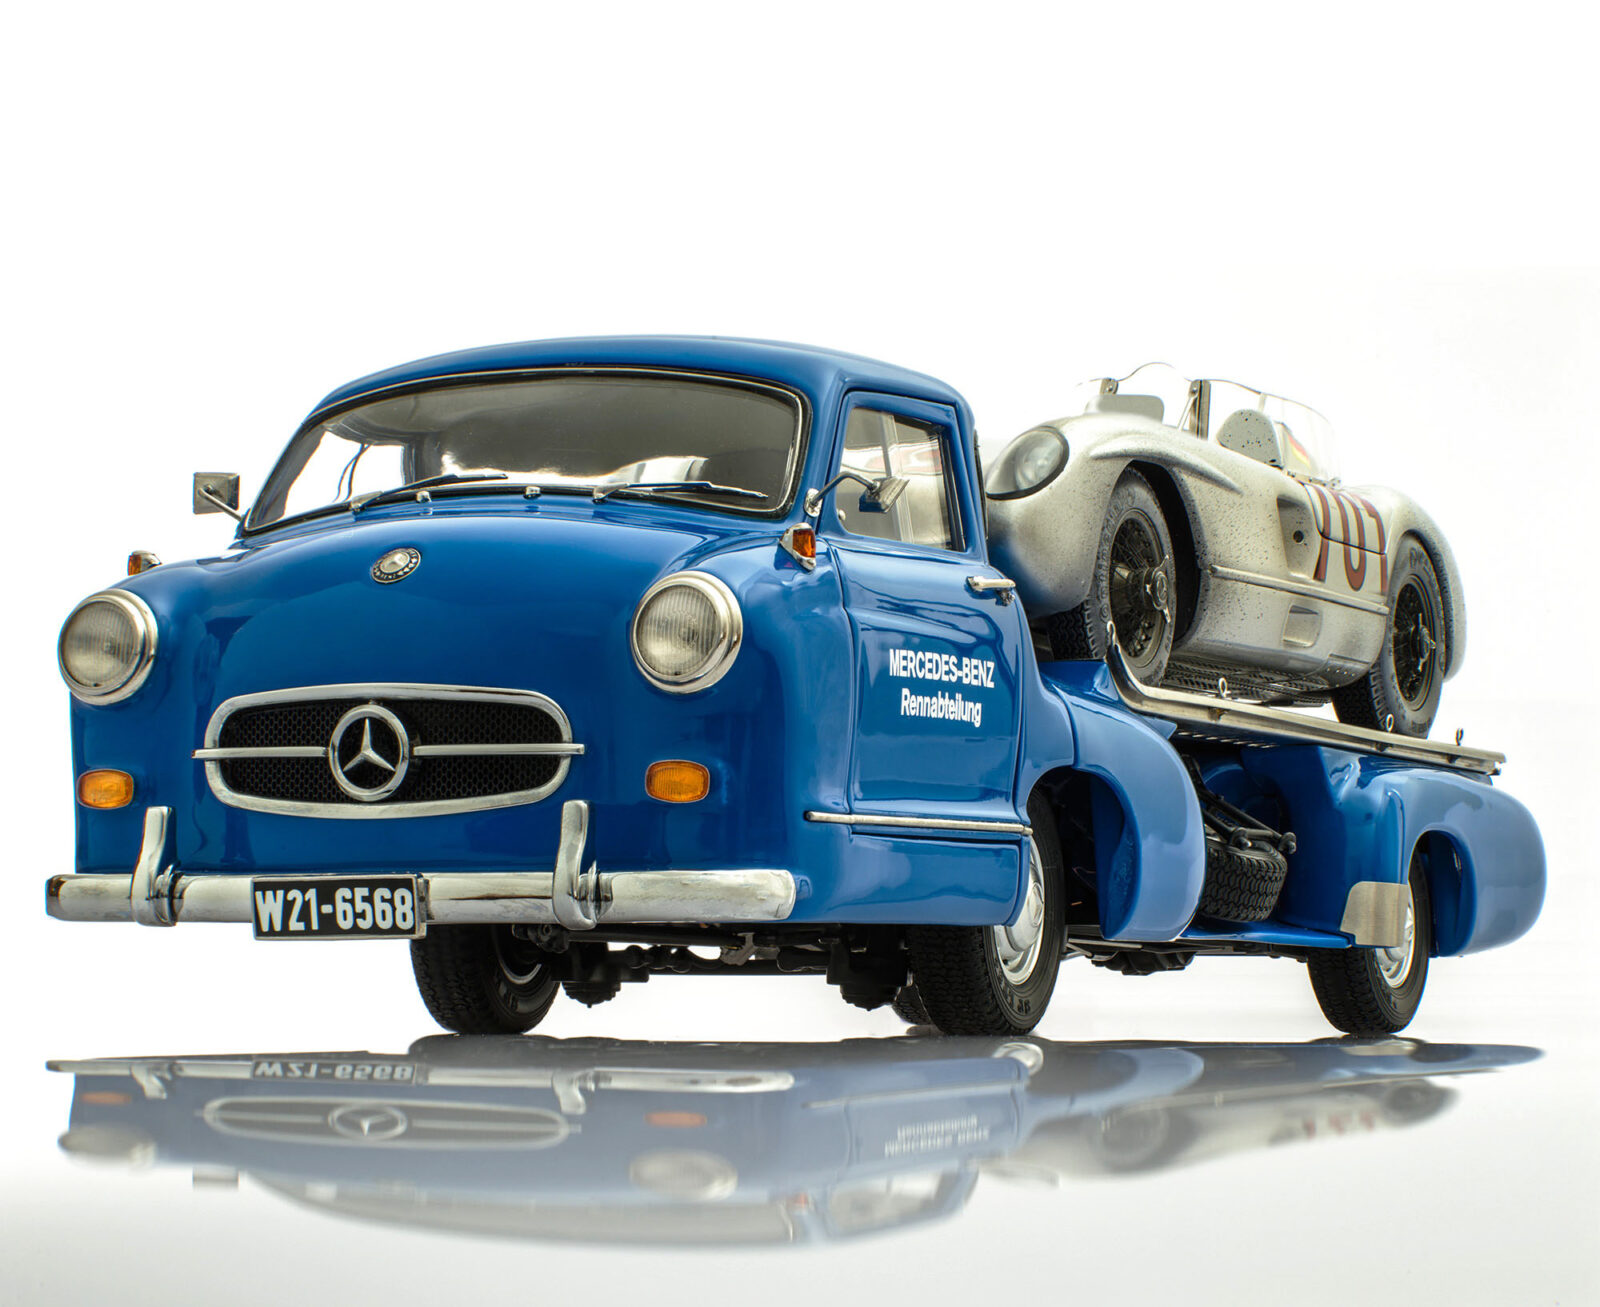 blue wonder dirty hero 300slr 1 1600x1307 - Mercedes-Benz Blue Wonder + Dirty Hero 300 SLR